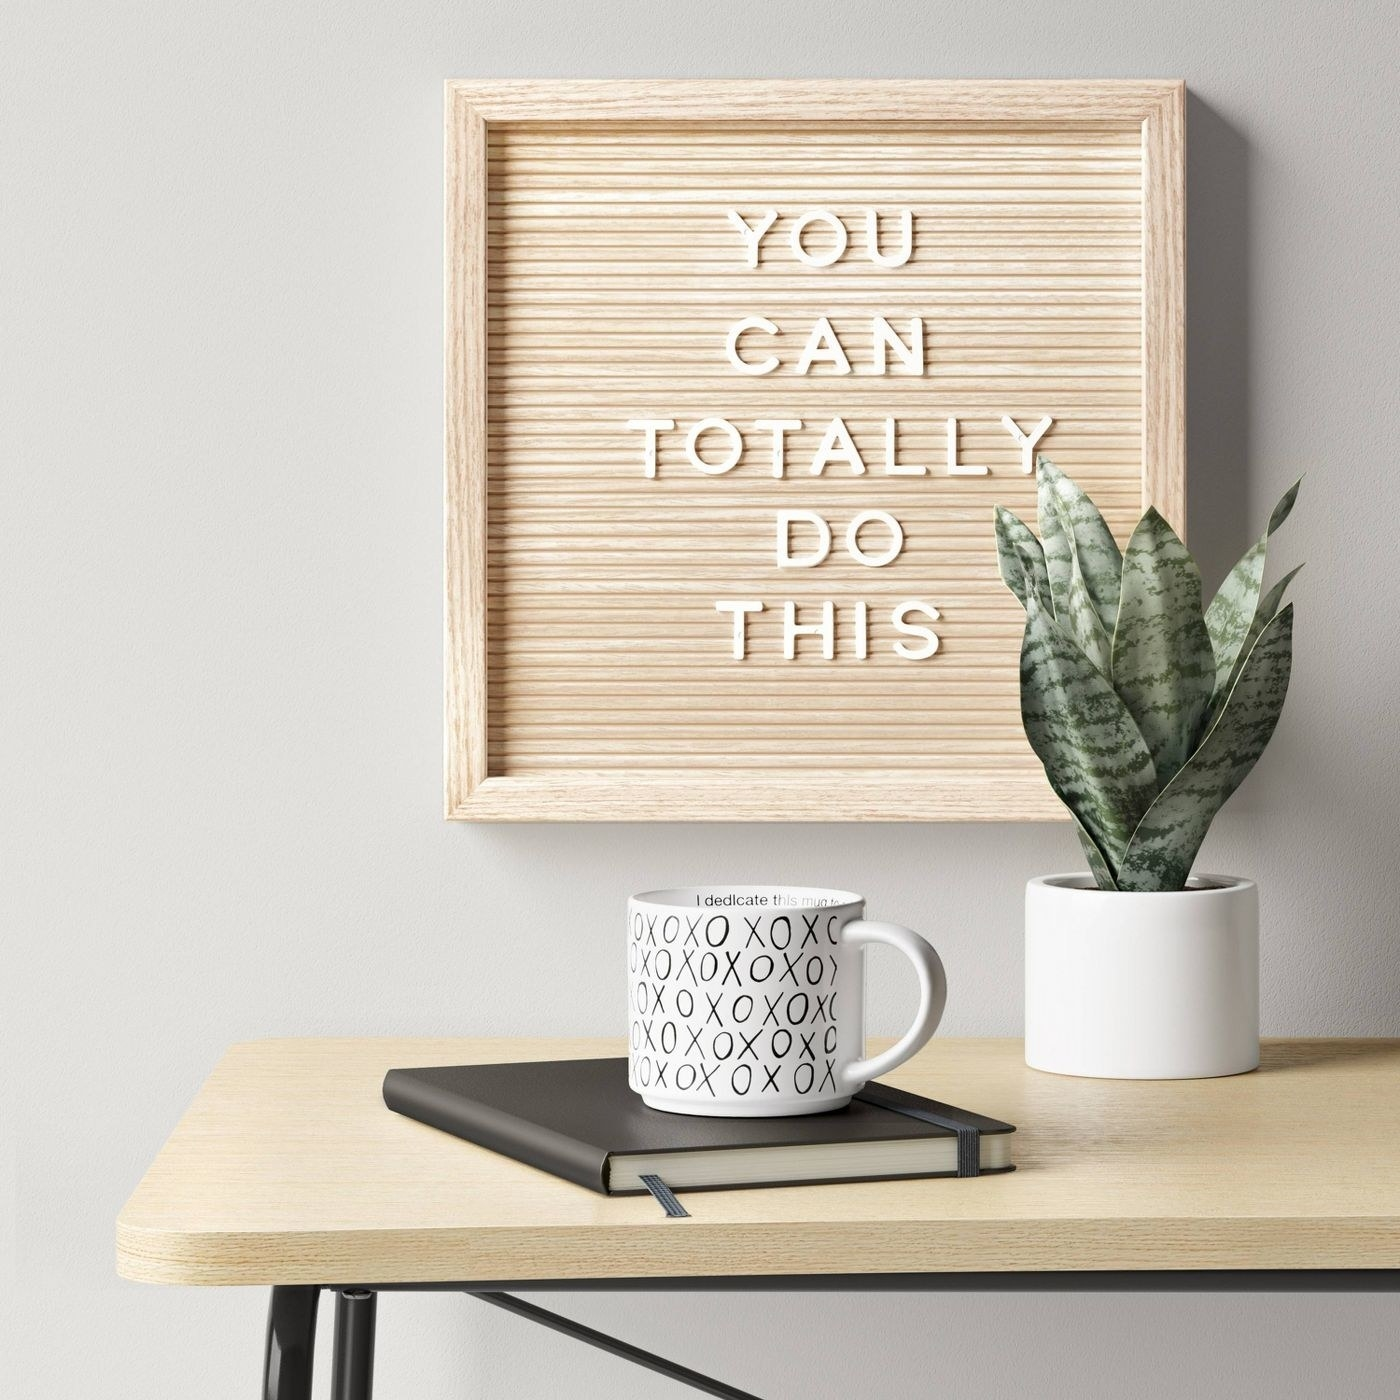 "wood letterboard with white letters spelling out ""you can totally do this"", hanging on a wall above a table"